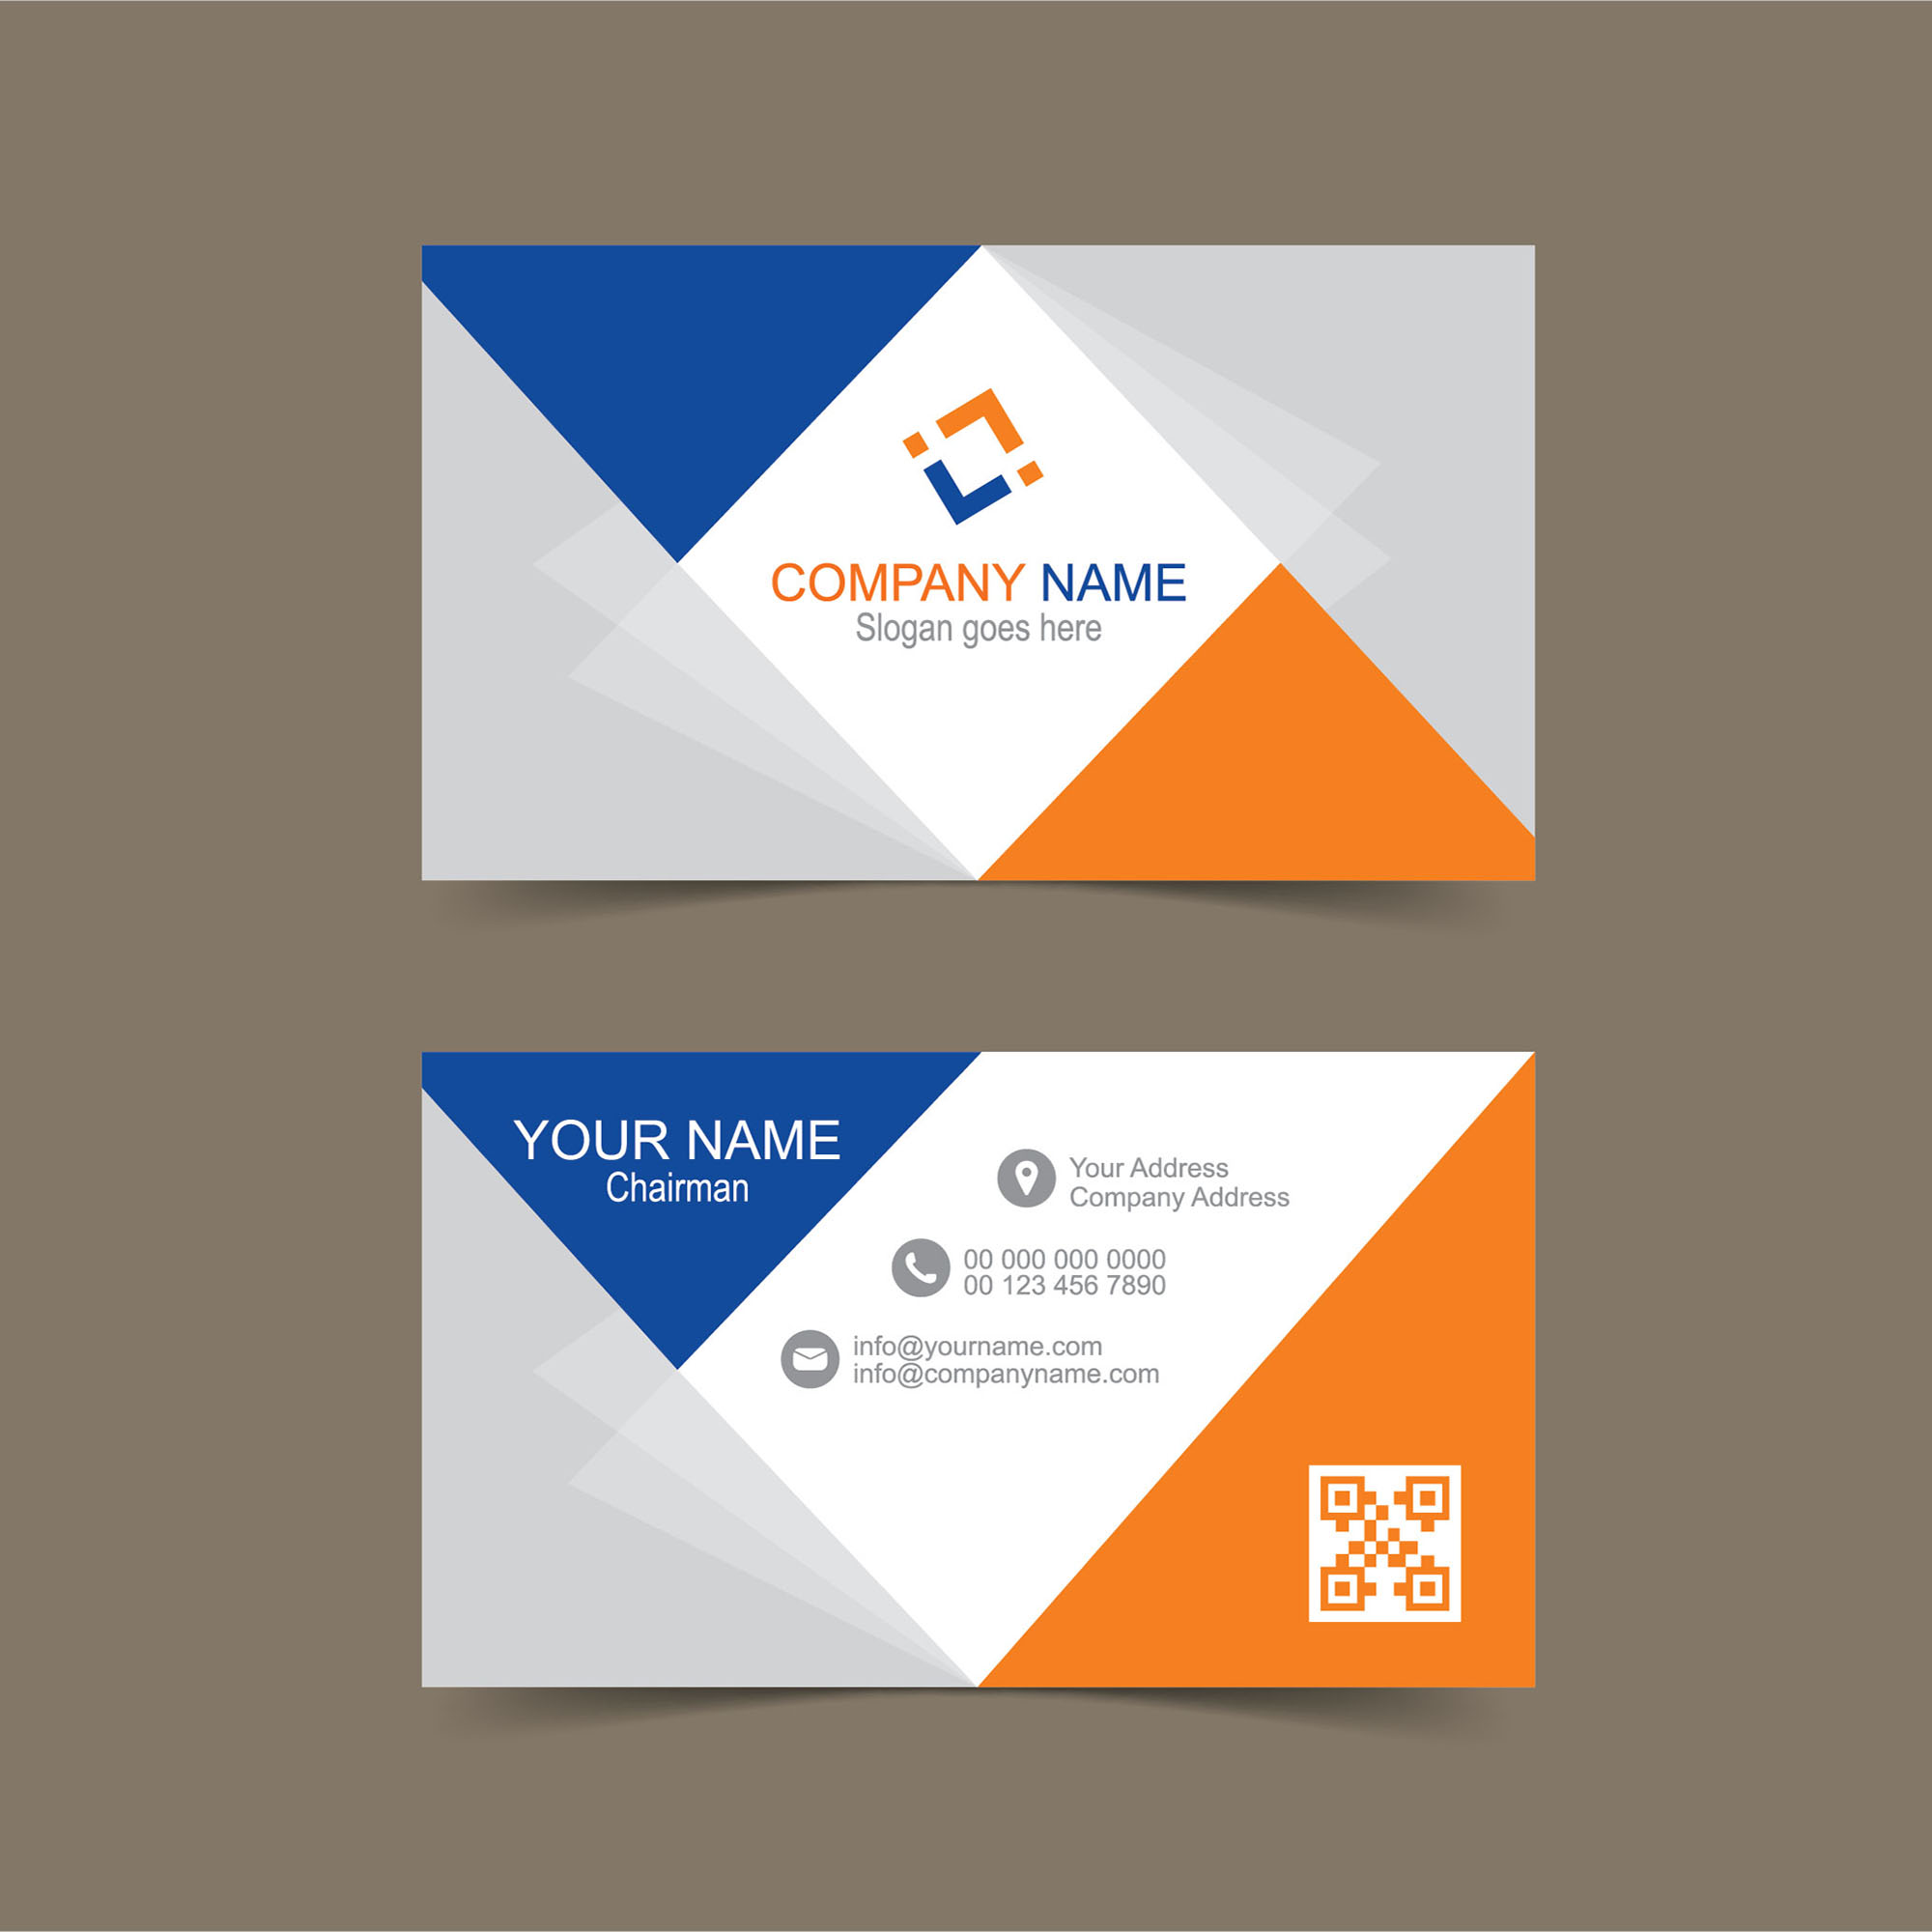 Free business card template for illustrator wisxi business card business cards business card design business card template design templates cheaphphosting Image collections